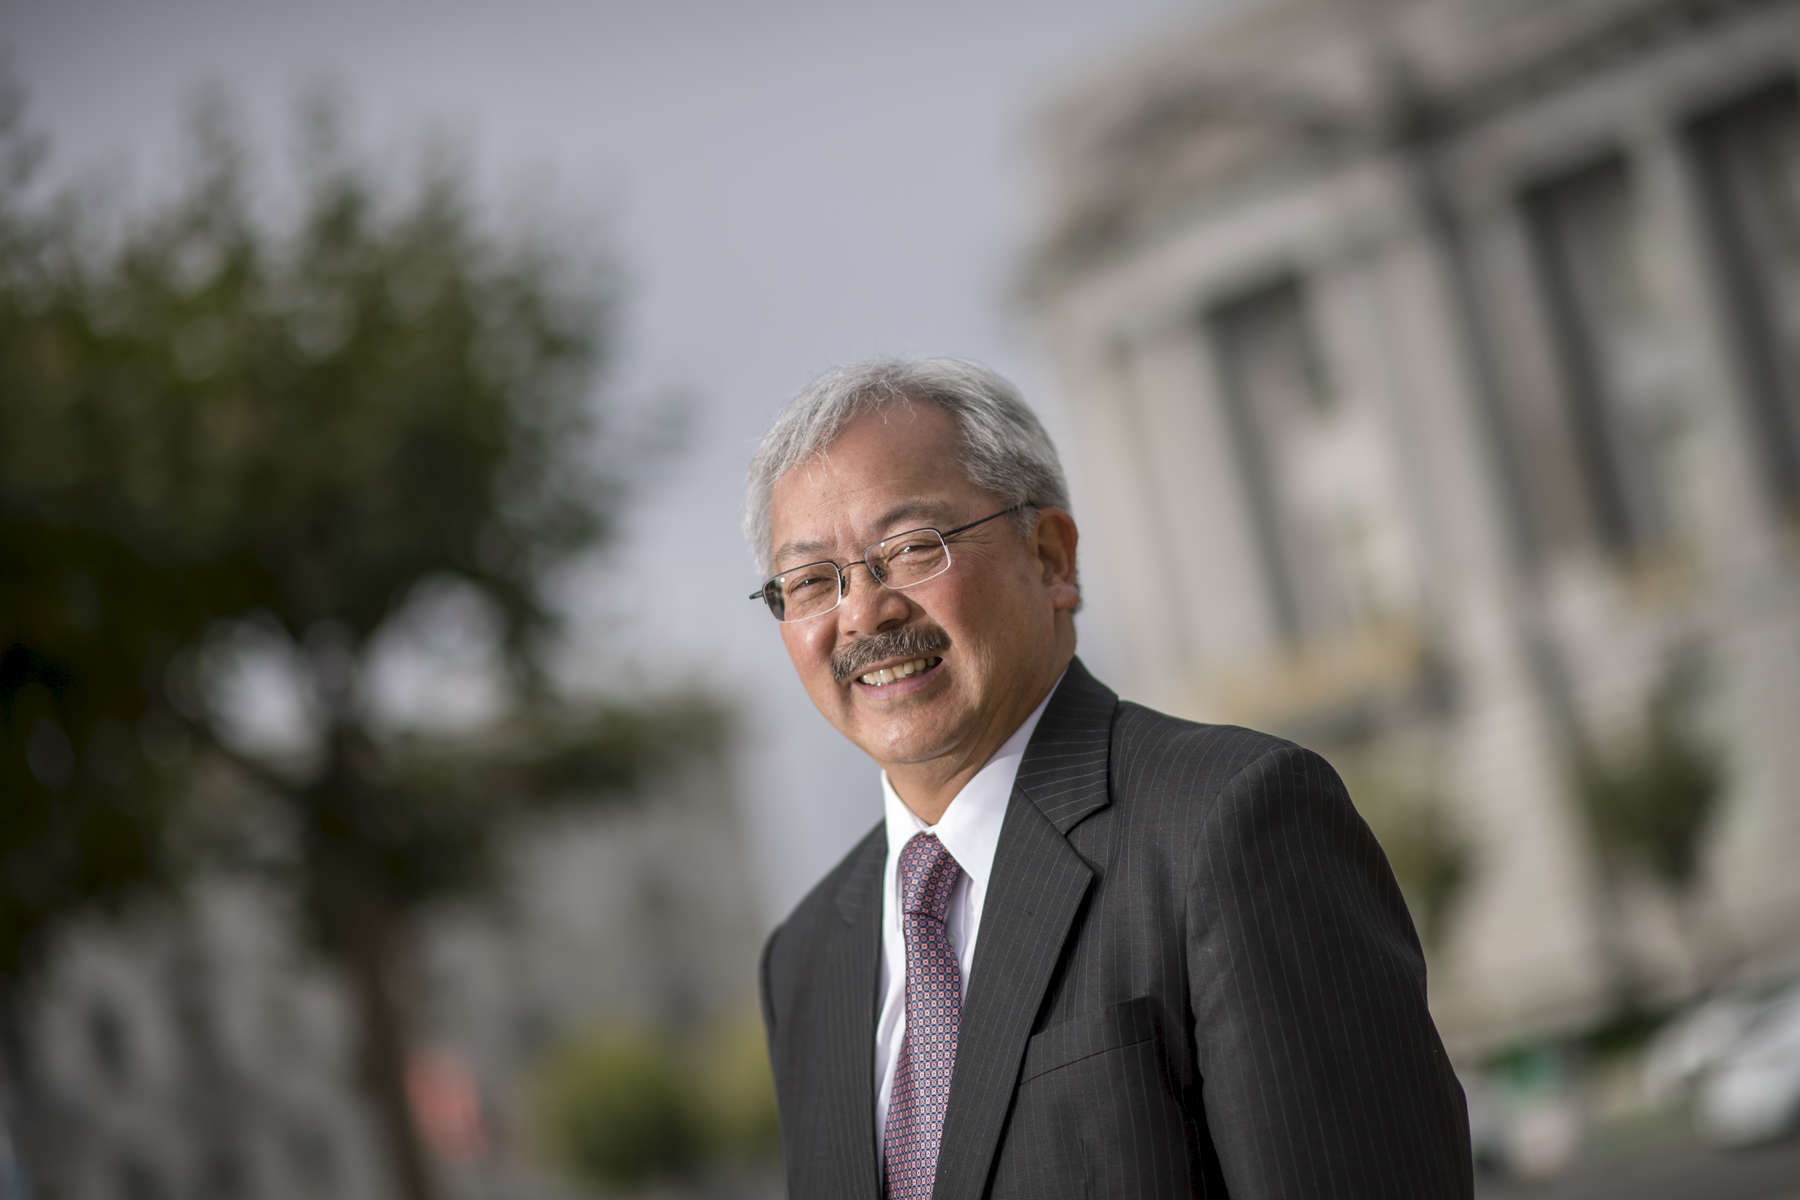 San Francisco Mayor Ed Lee stands for a photograph in front of the City Hall building in San Francisco, California, U.S., on Wednesday, Aug. 16, 2016. Photographer: David Paul Morris